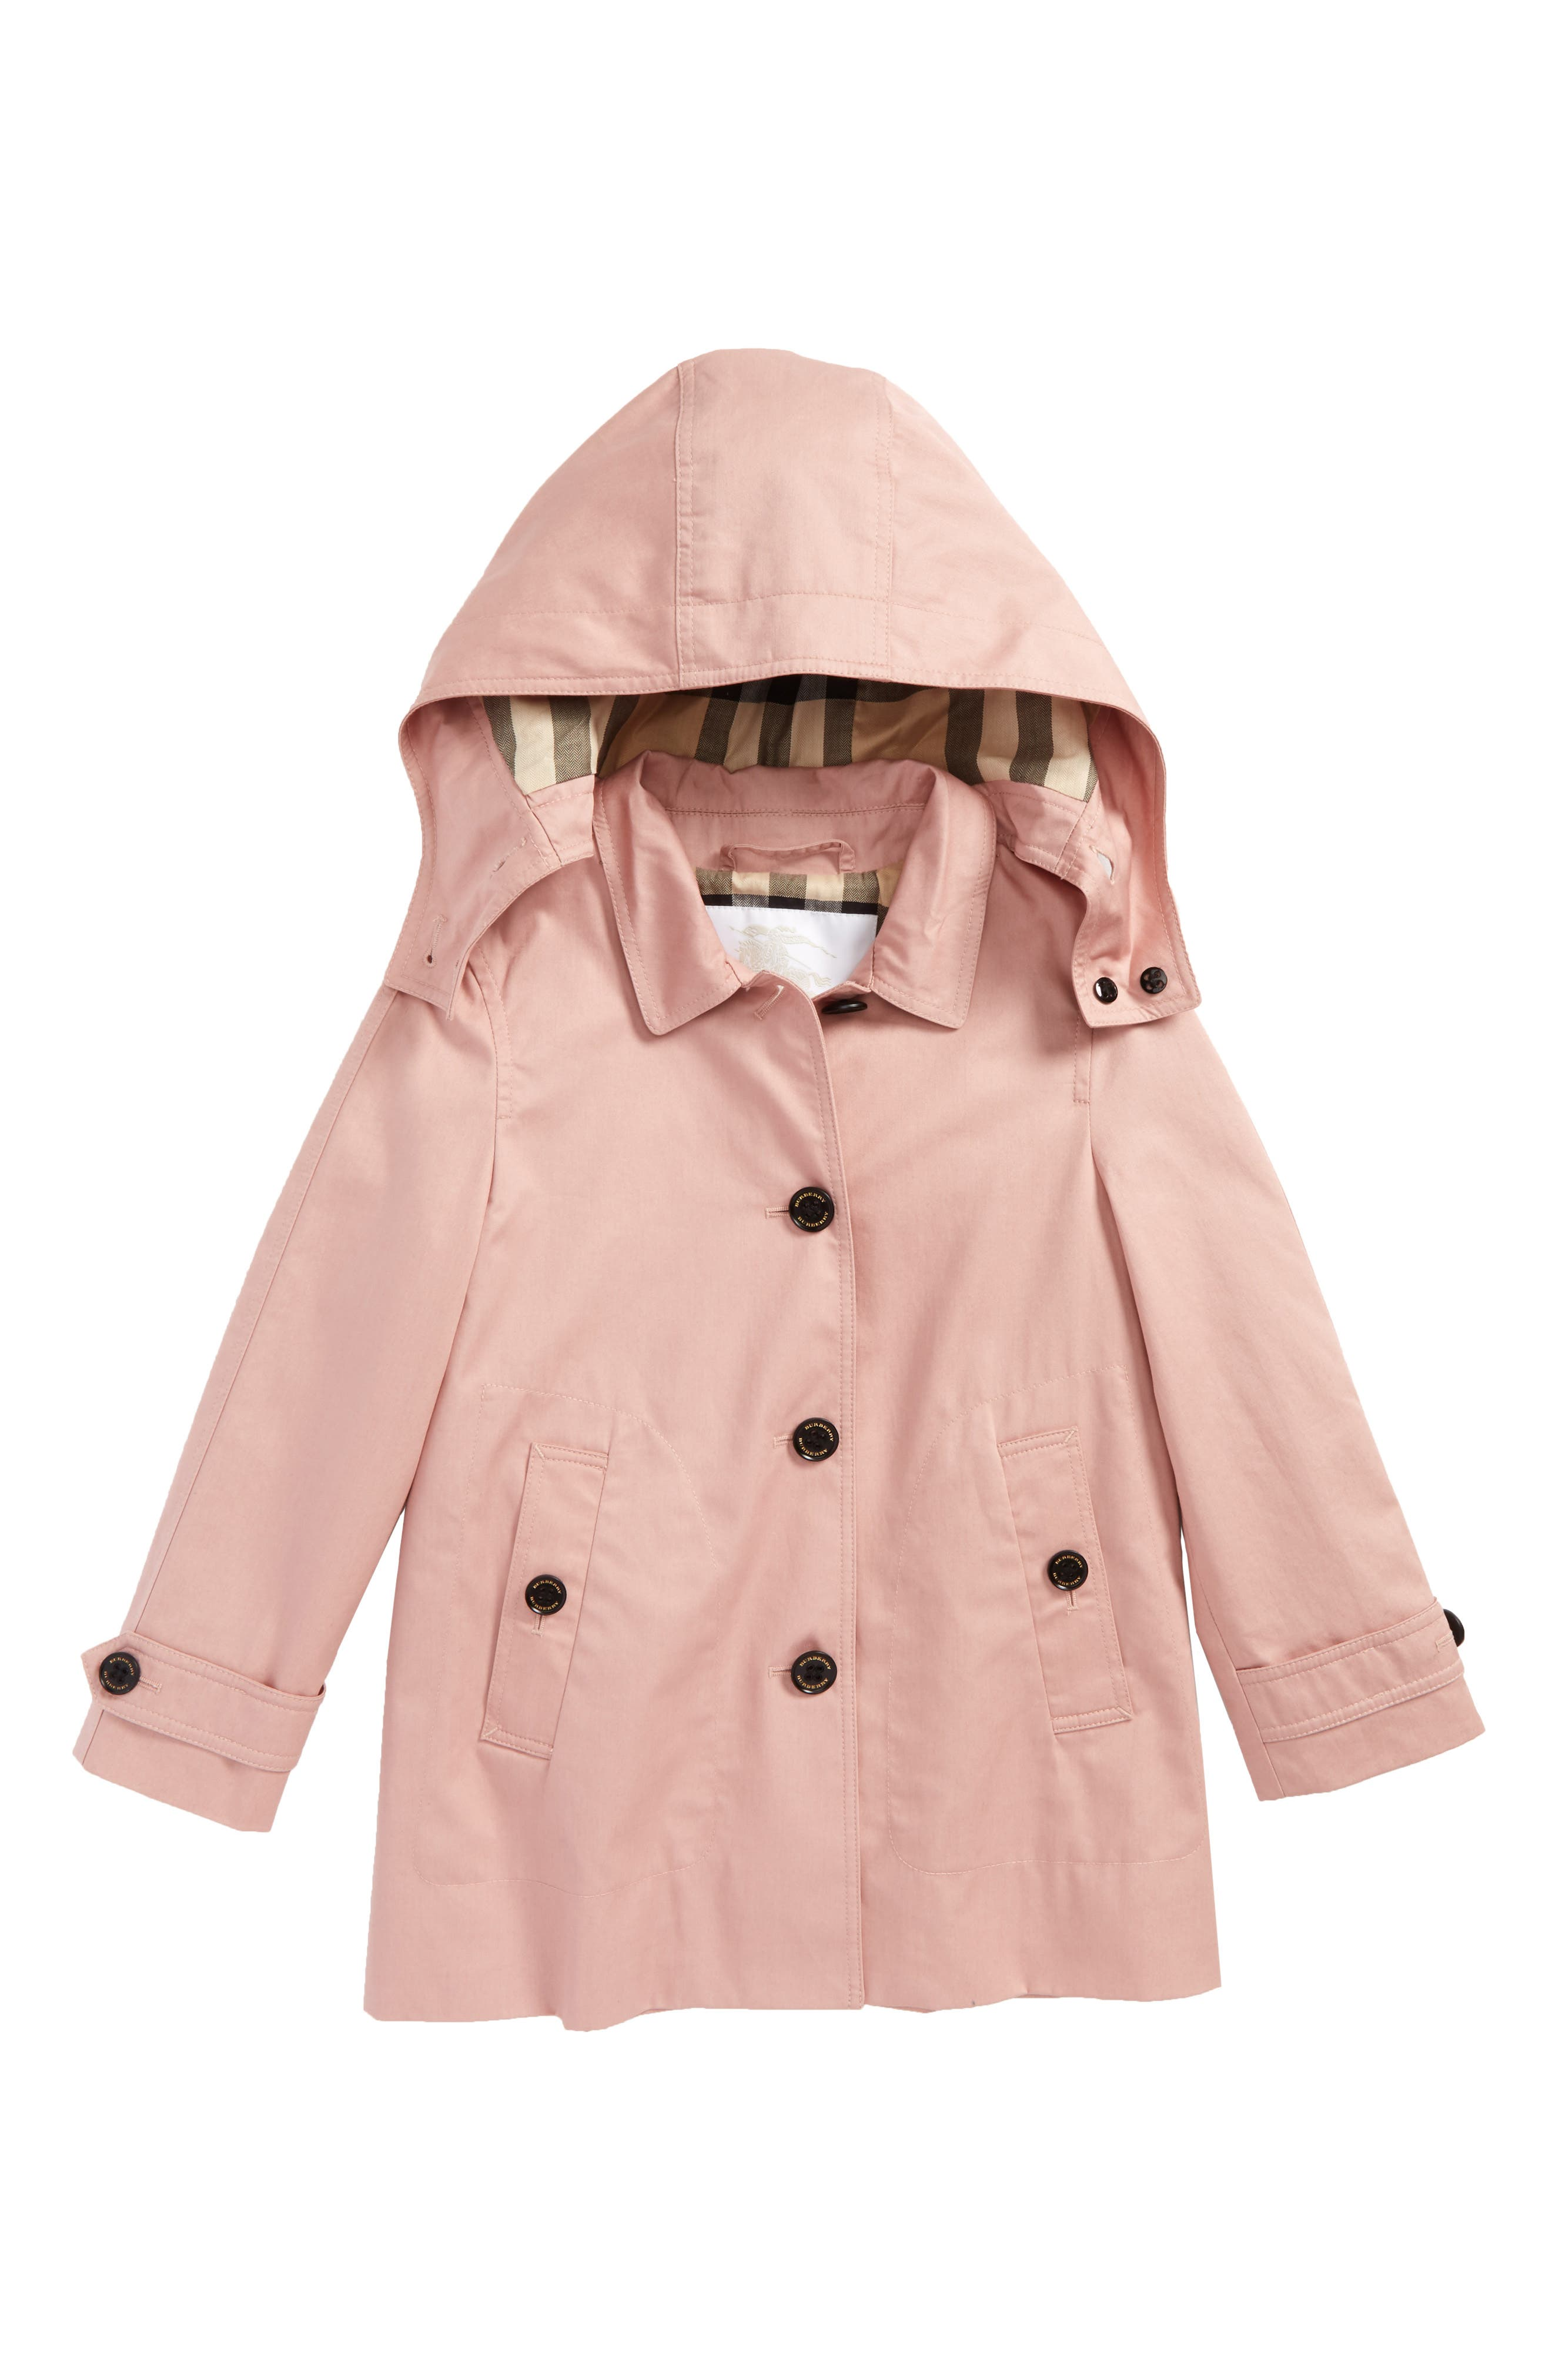 Geri Hooded Trench Coat,                         Main,                         color, Pale Rose